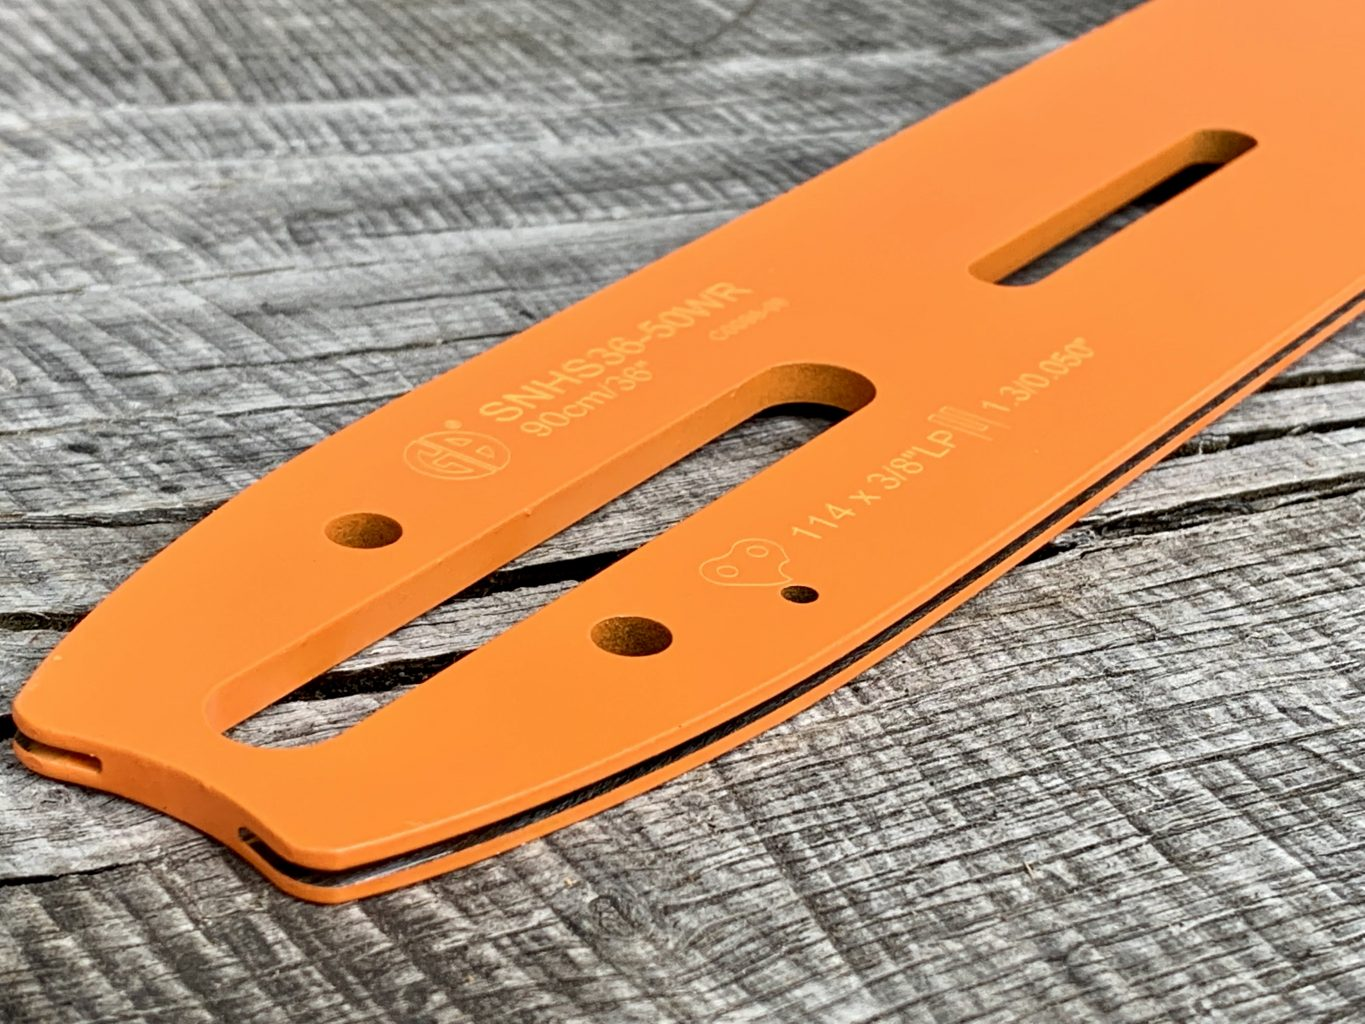 """SNHS42-50WR 42""""[107cm] GB Slotted Lo Pro Milling Bar For Stihl 064, 065, 066, MS650, MS660, MS661 3/8 Lo Pro .050 137 drive links"""